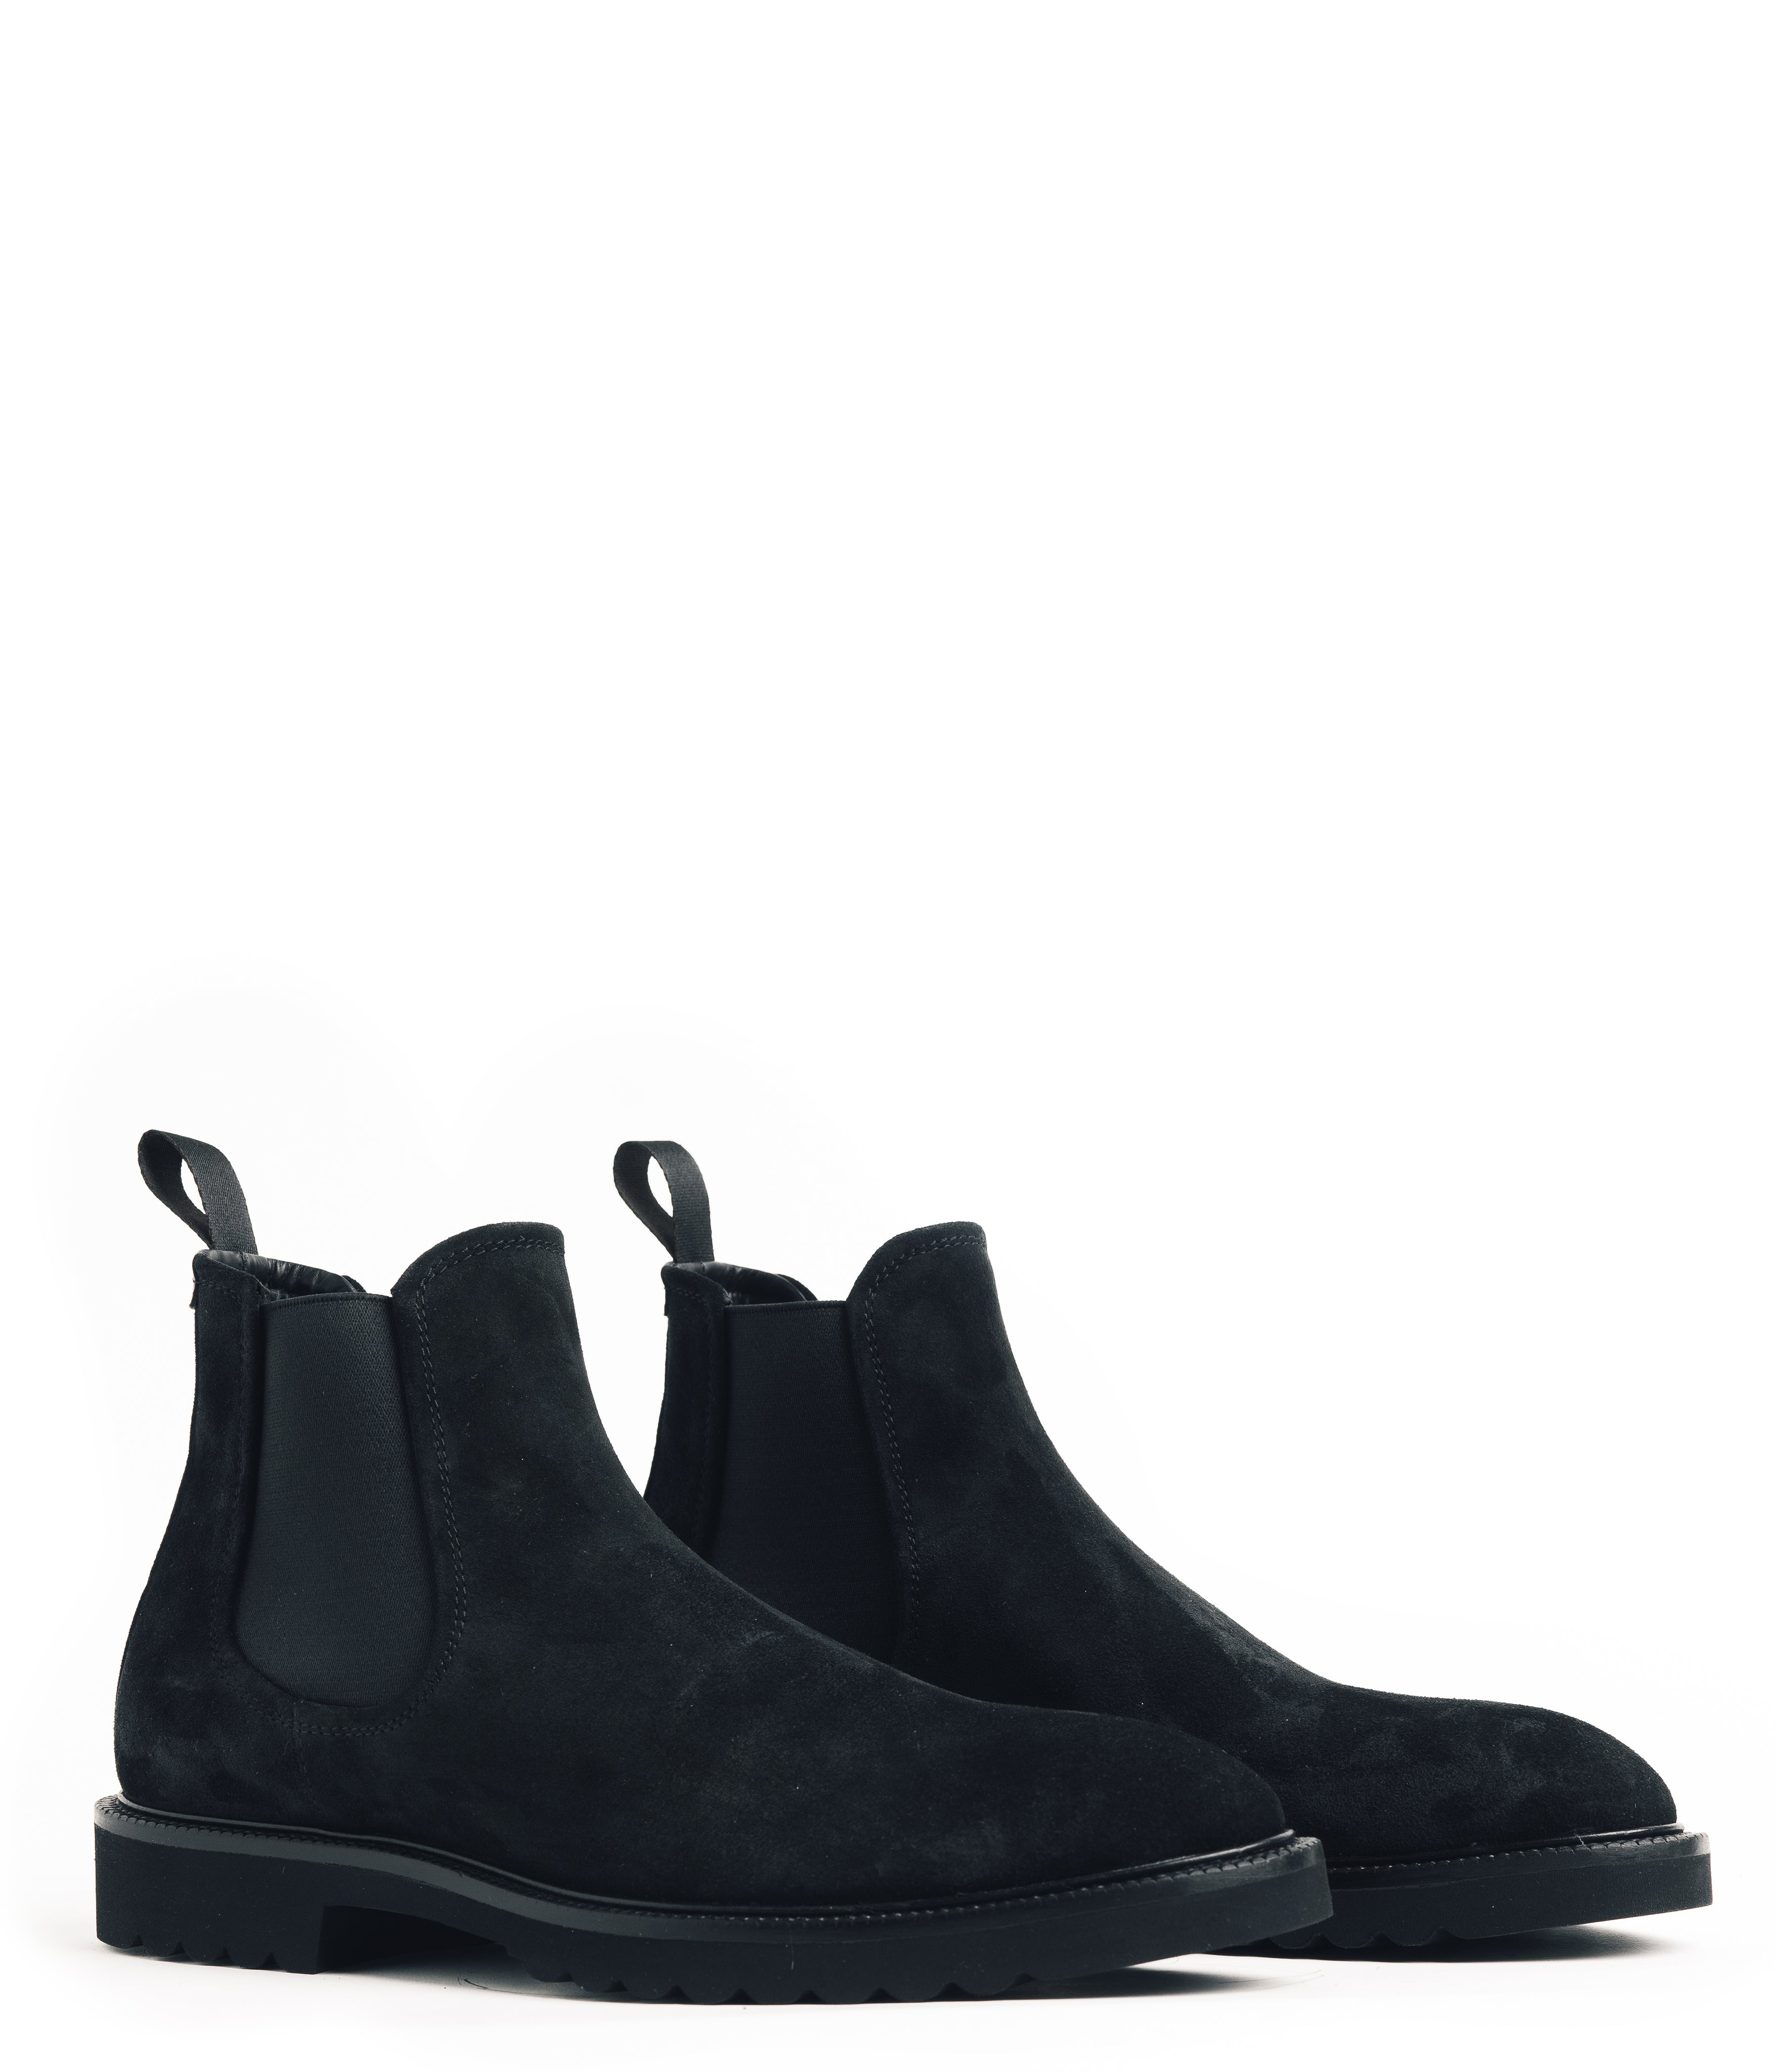 Chelsea Nubuck Boot - Black - Footwear - Good Man Brand